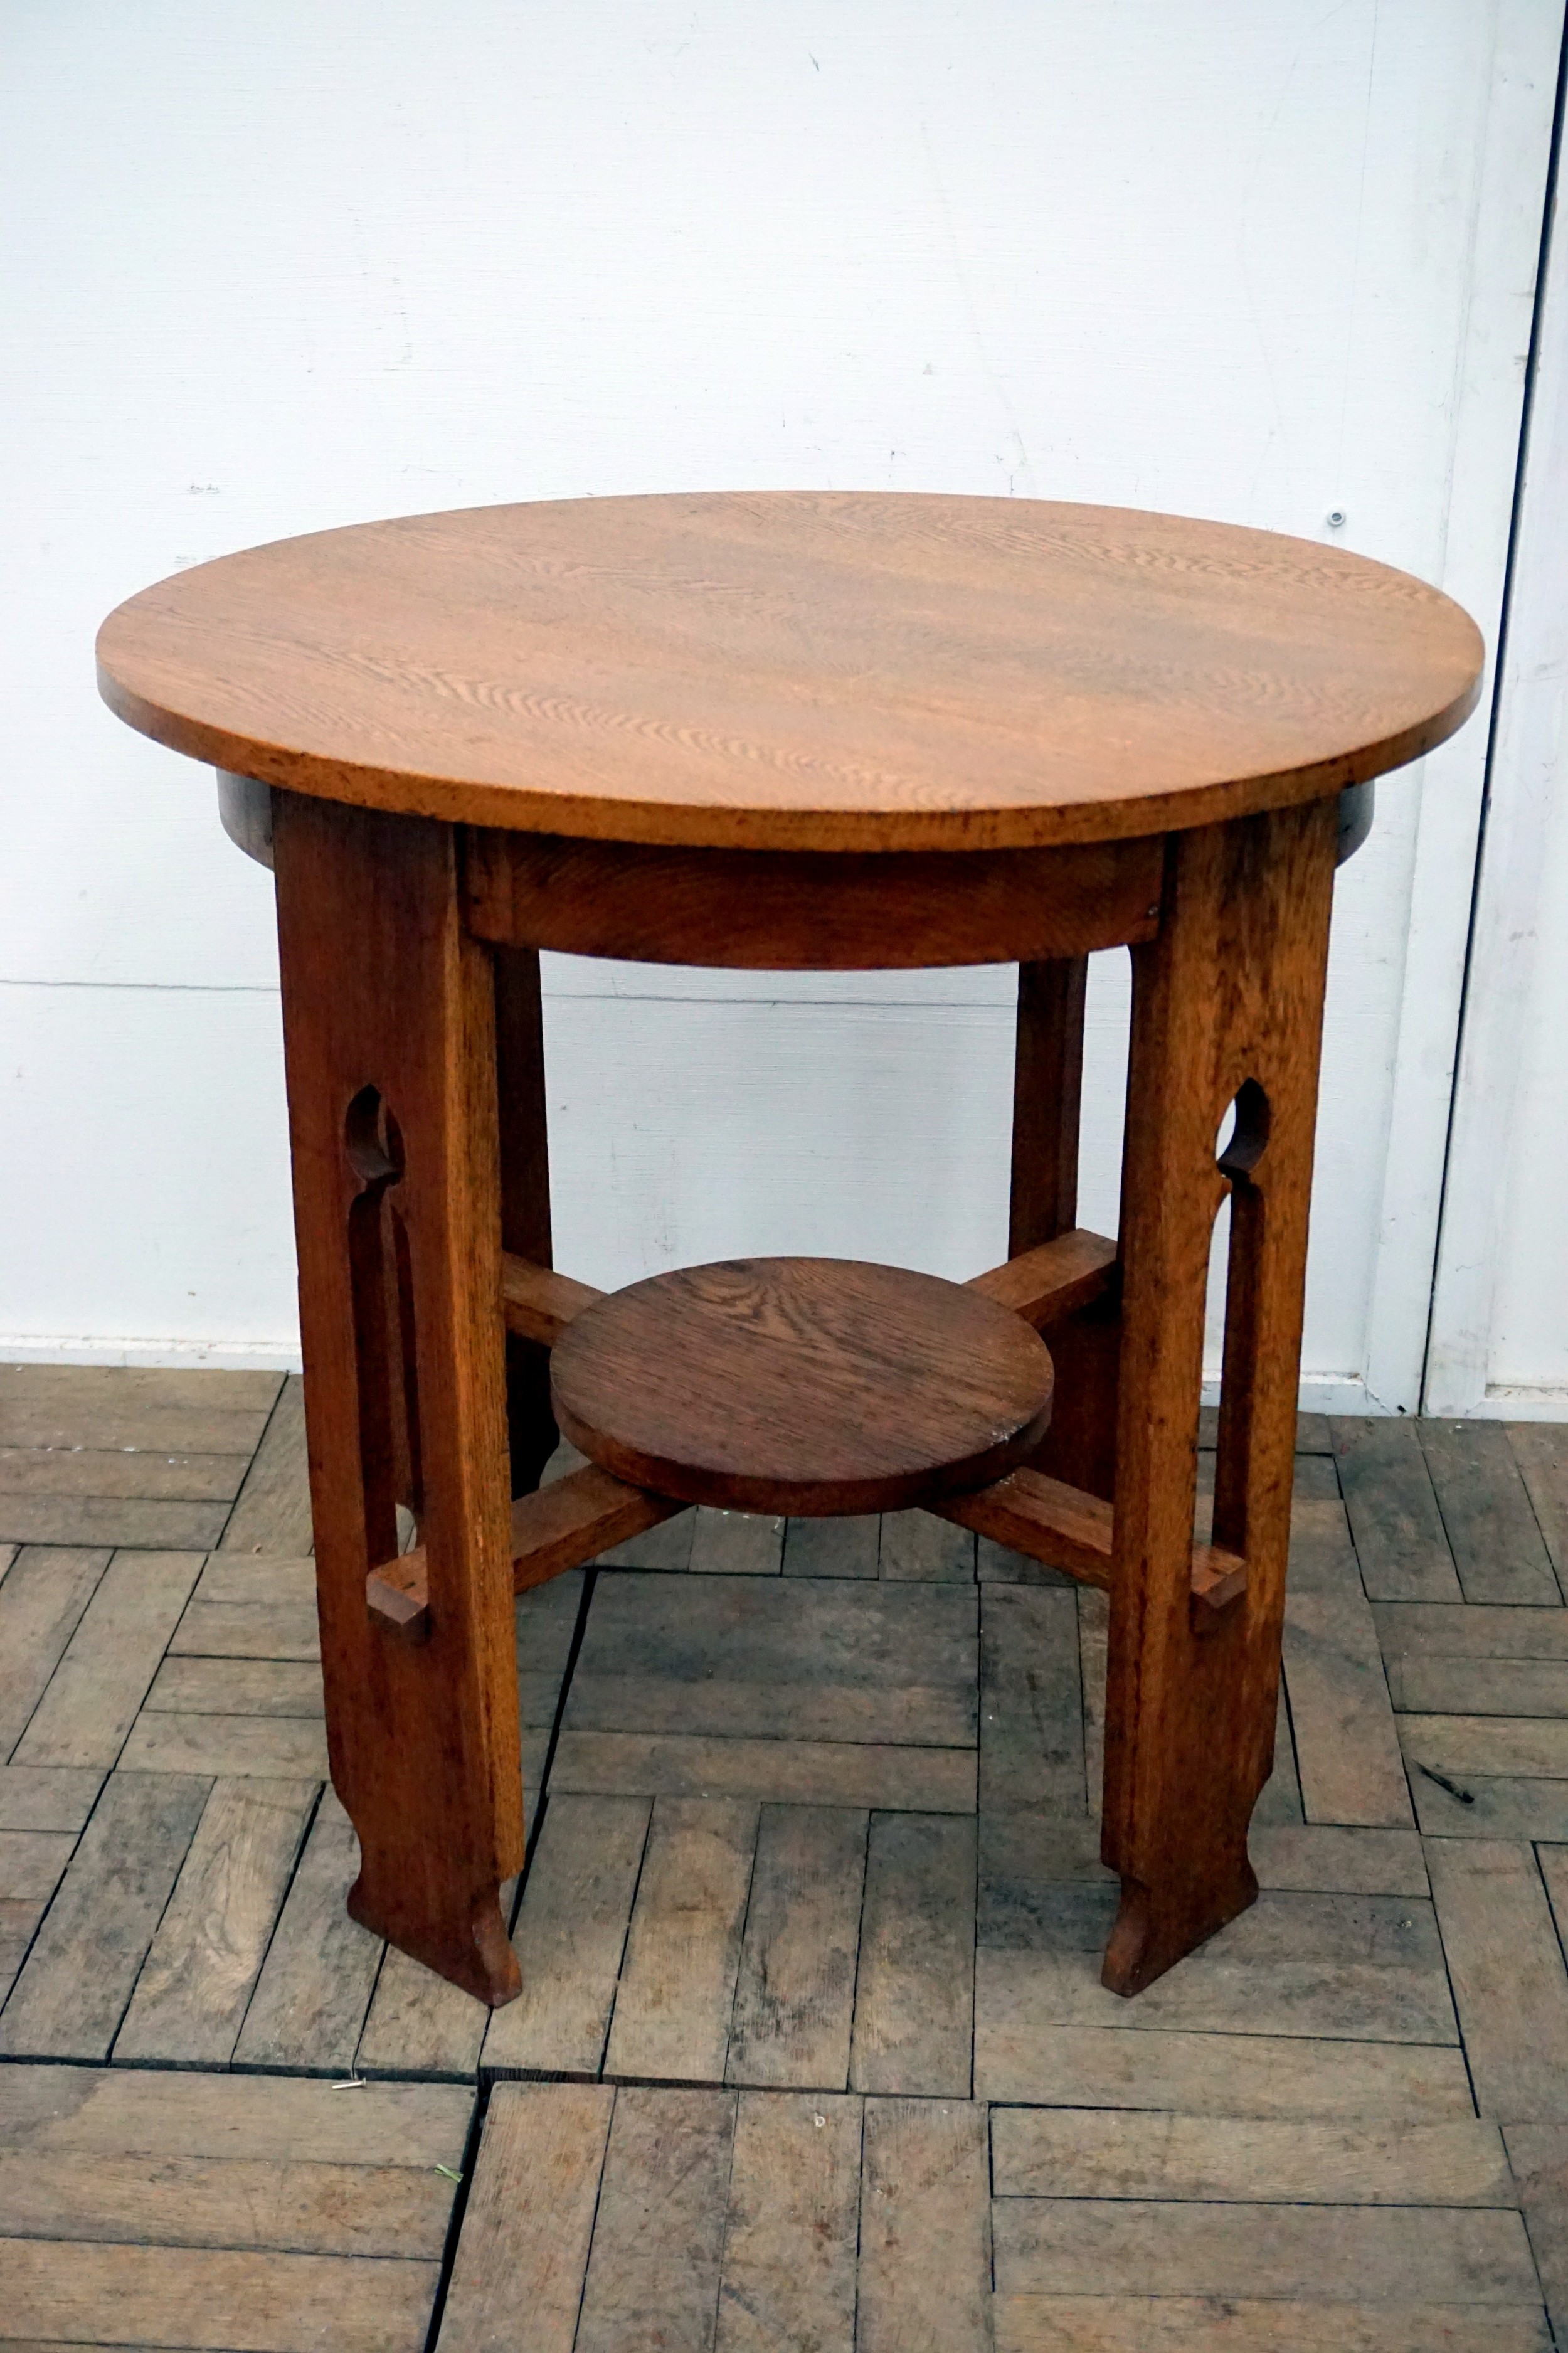 a good solid oak arts and crafts circular occasional table